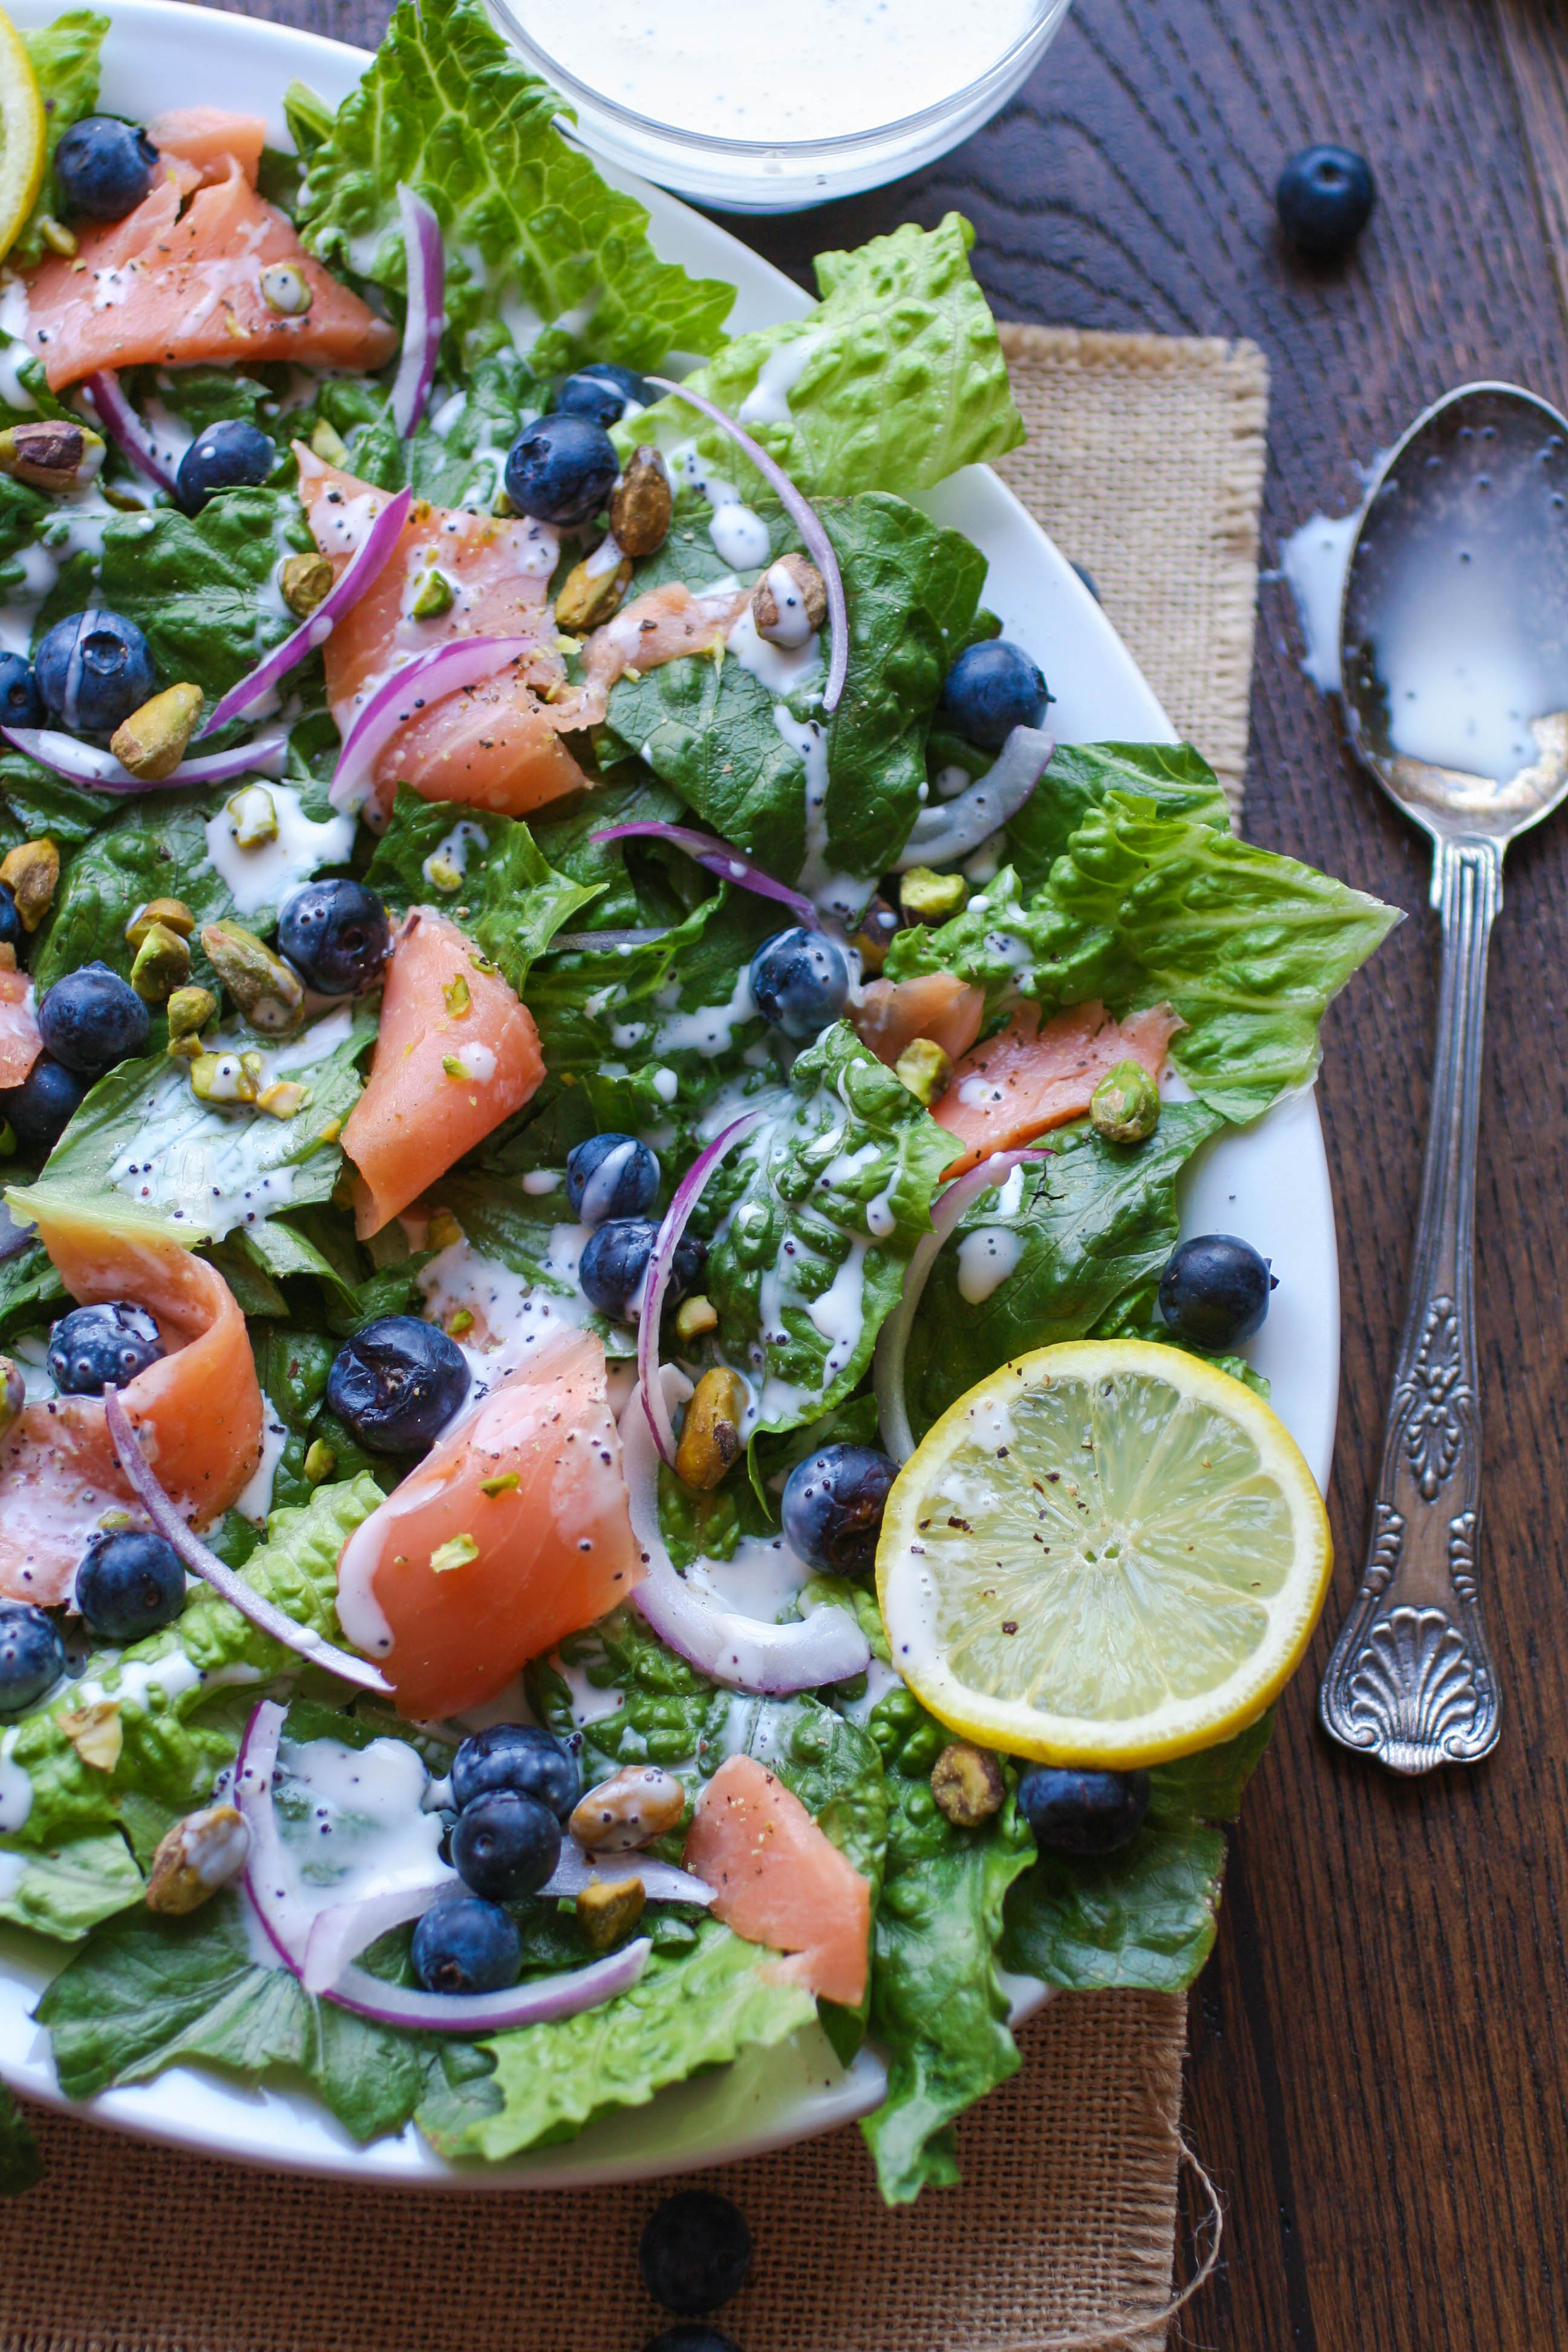 Smoked Salmon Salad with Blueberries and Lemon Poppy Seed Dressing is a great summertime meal. You'll love the salad and the easy-to-make dressing!